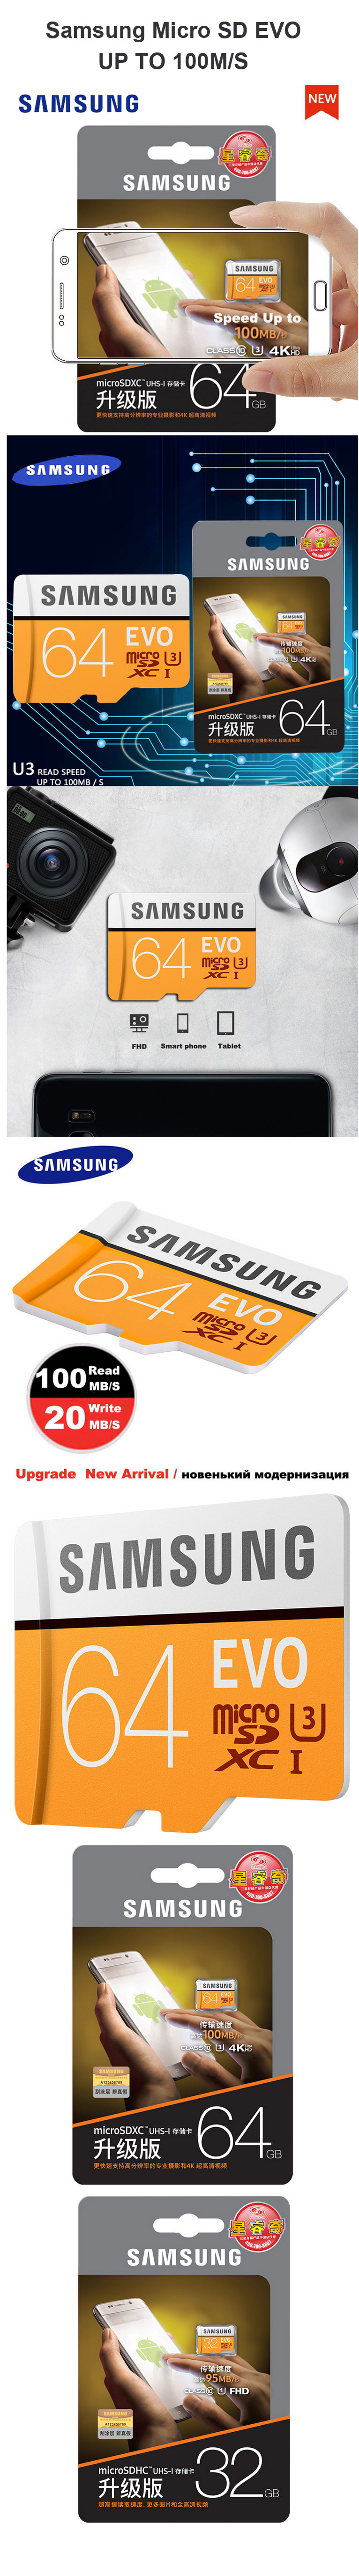 Buy Geeks Deals For Only S89 Instead Of S0 Samsung Micro Sd 128 Gb Evo Plus Our Service Center Is Conviently Located At Ubi Near Macpherson Mrt Do Contact Us First Any Warranty Problem We Will Assist You Asap